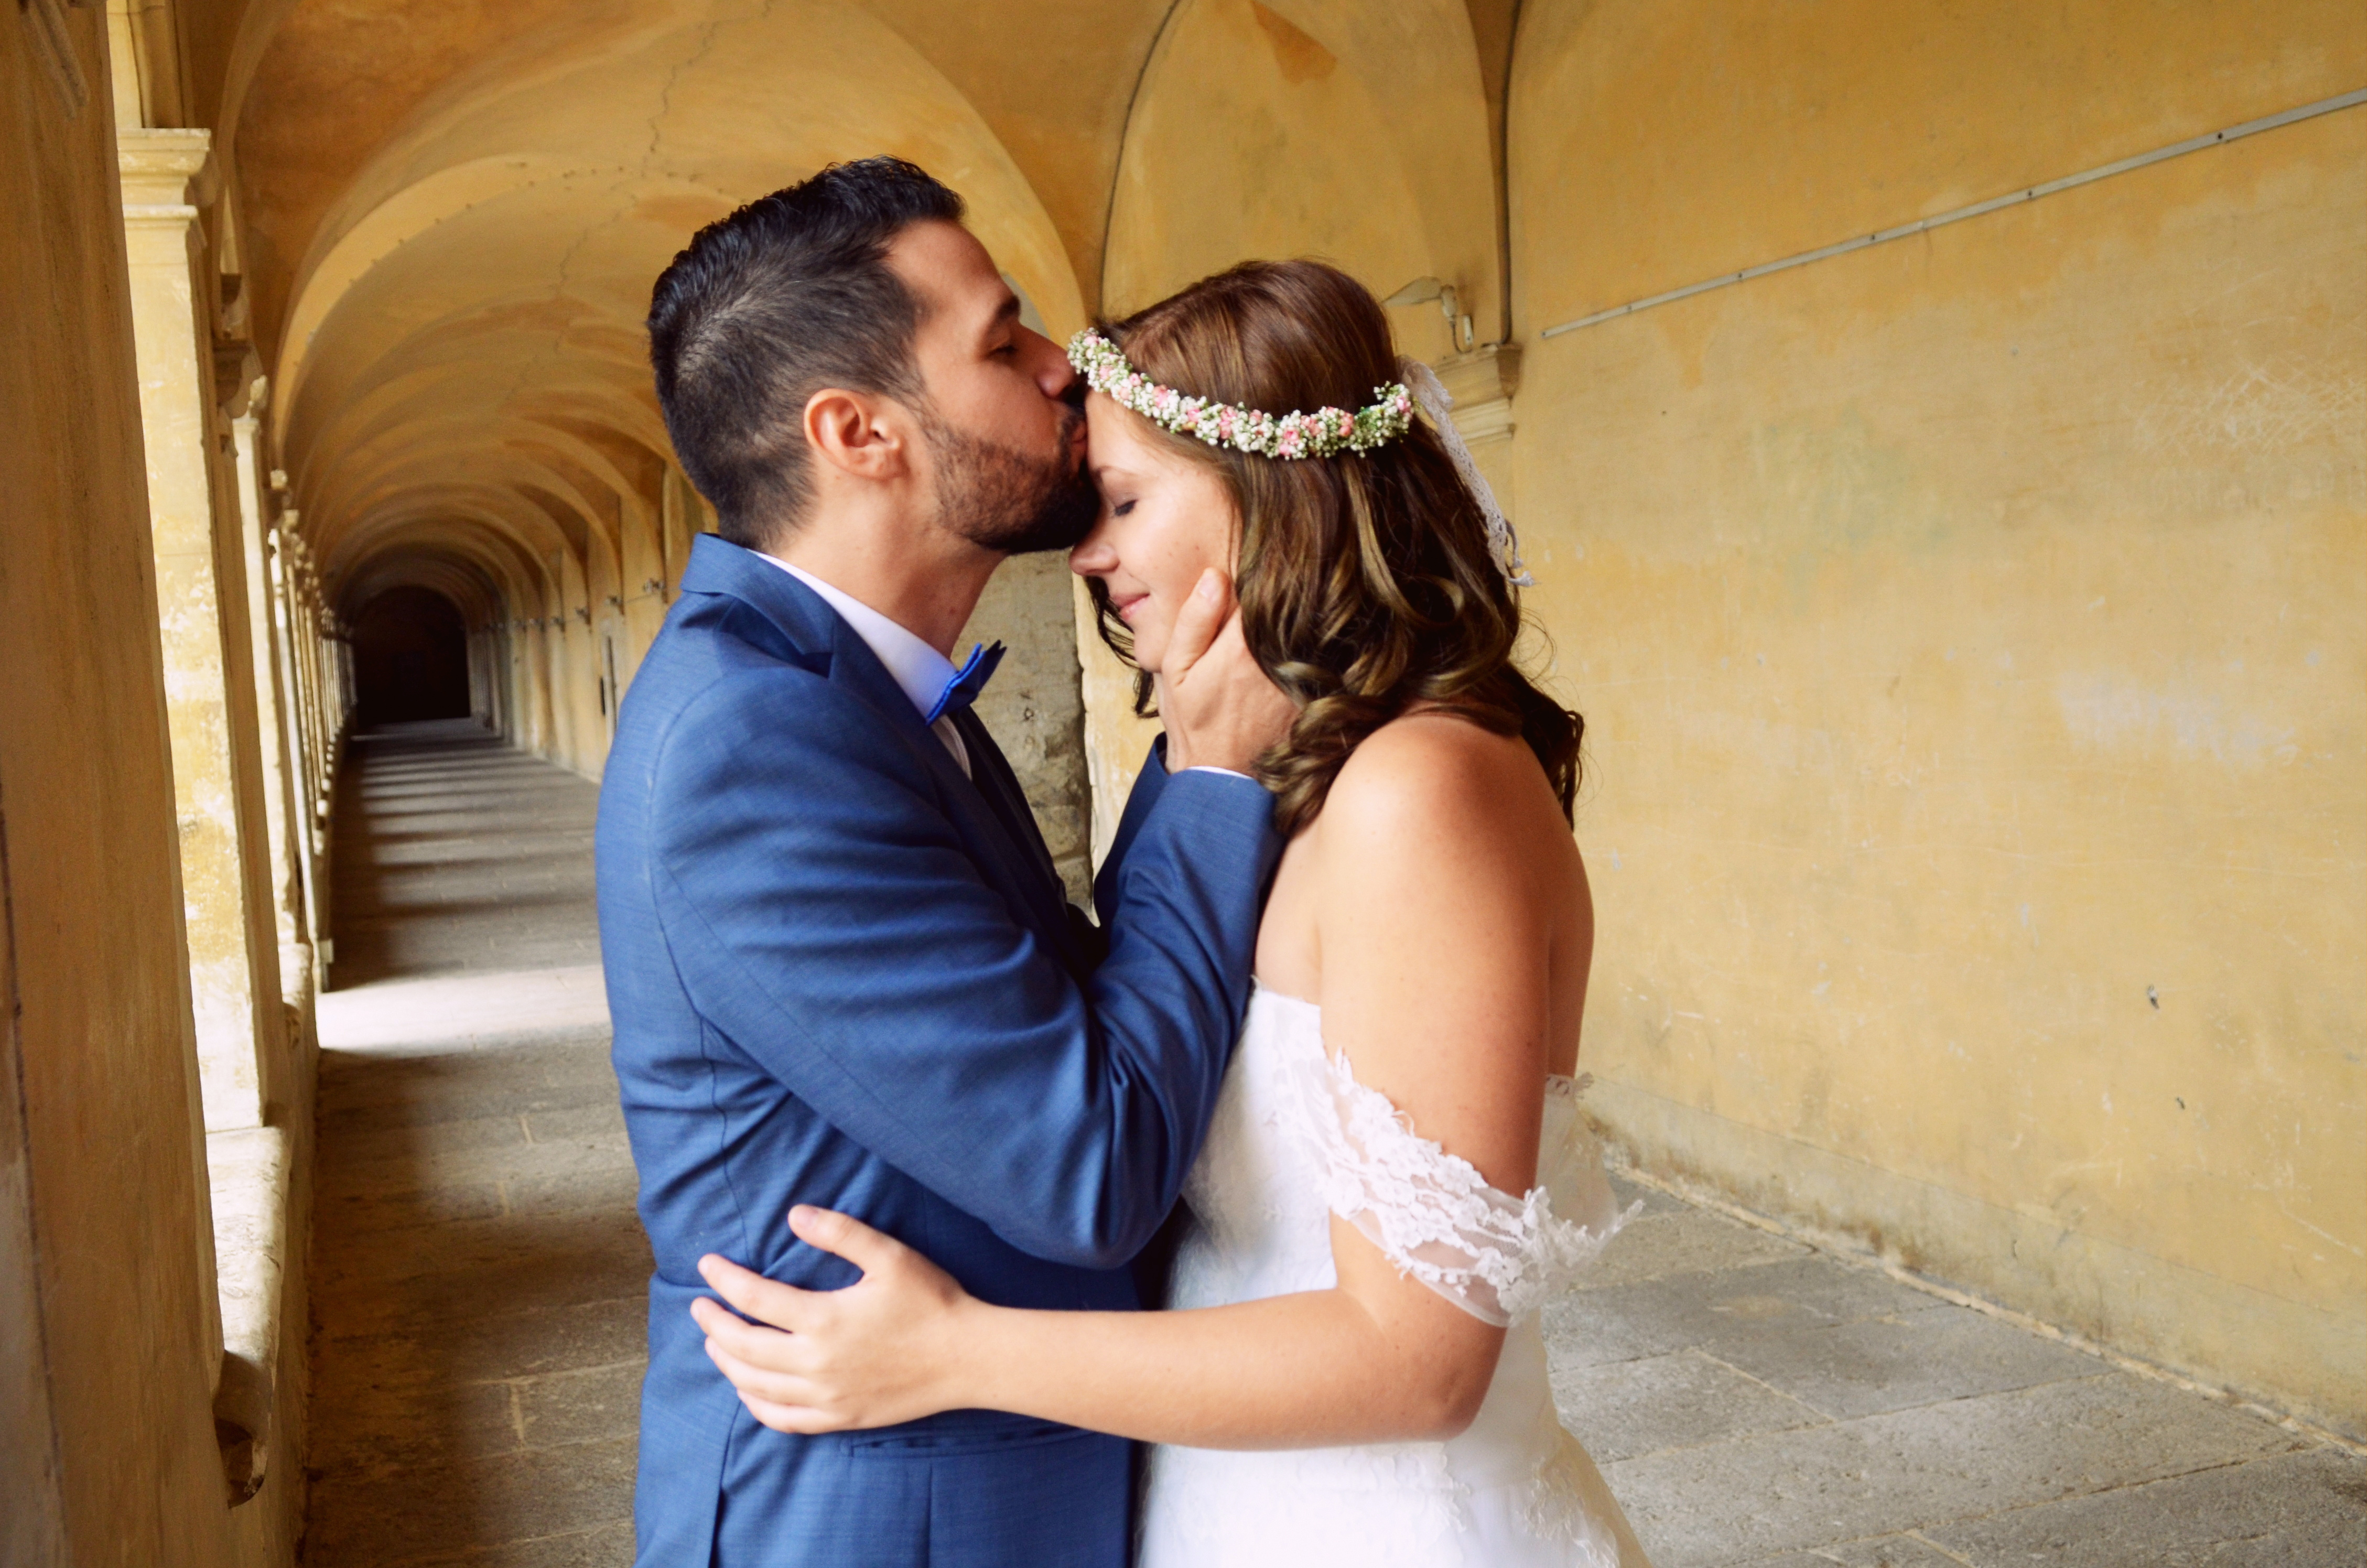 Adeline-Mathieu _Authentic Love Photography-225